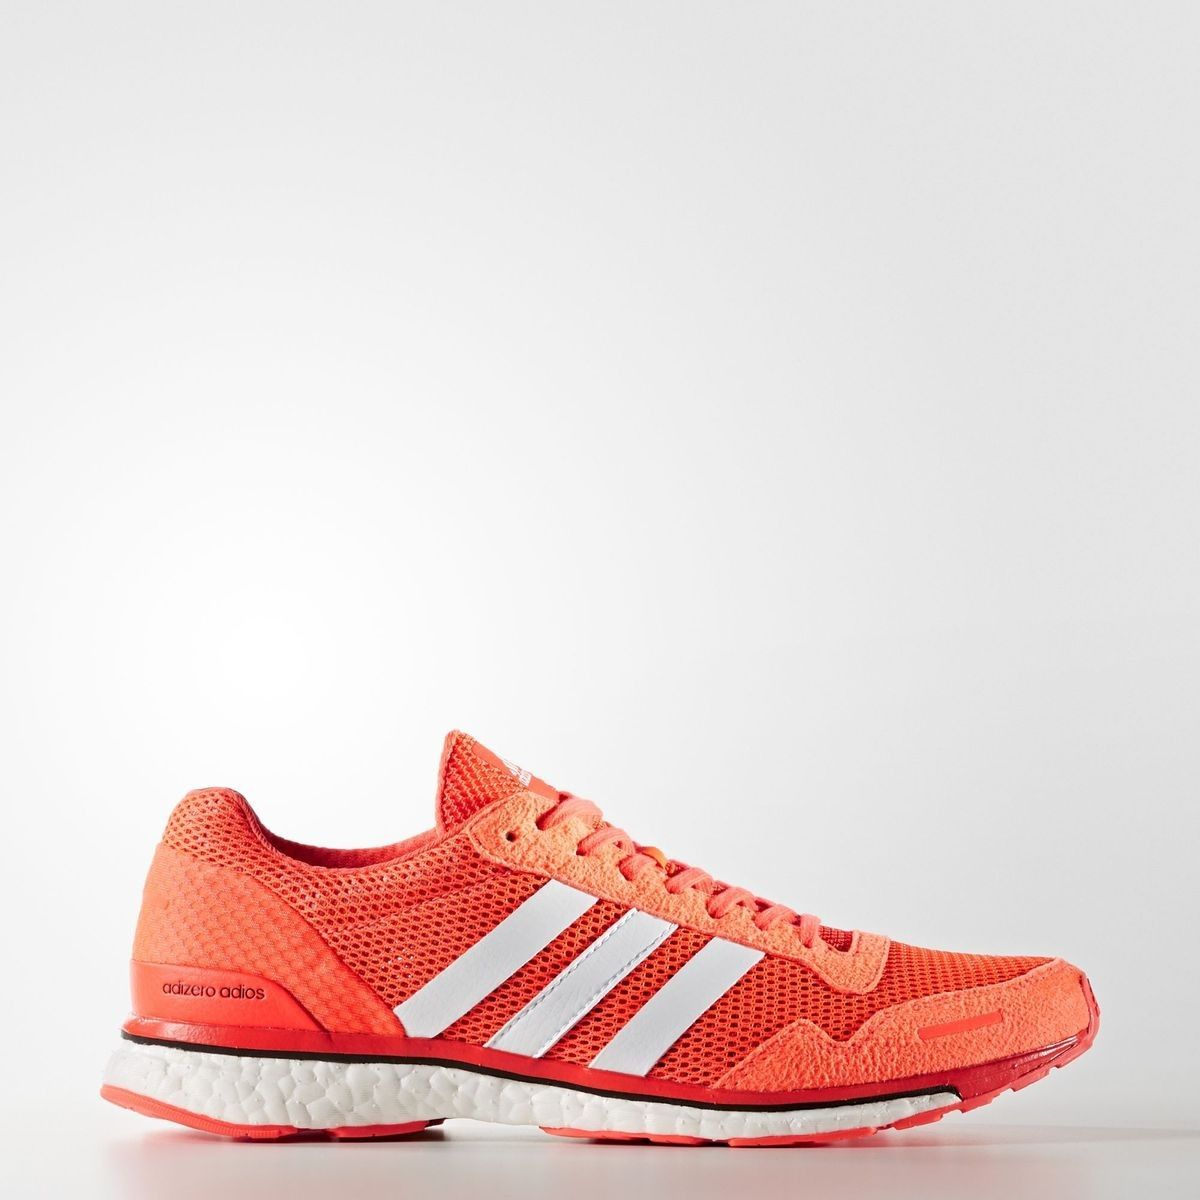 CHAUSSURES HOMME FEMME BASKETS ADIDAS SAMBA taille US 12